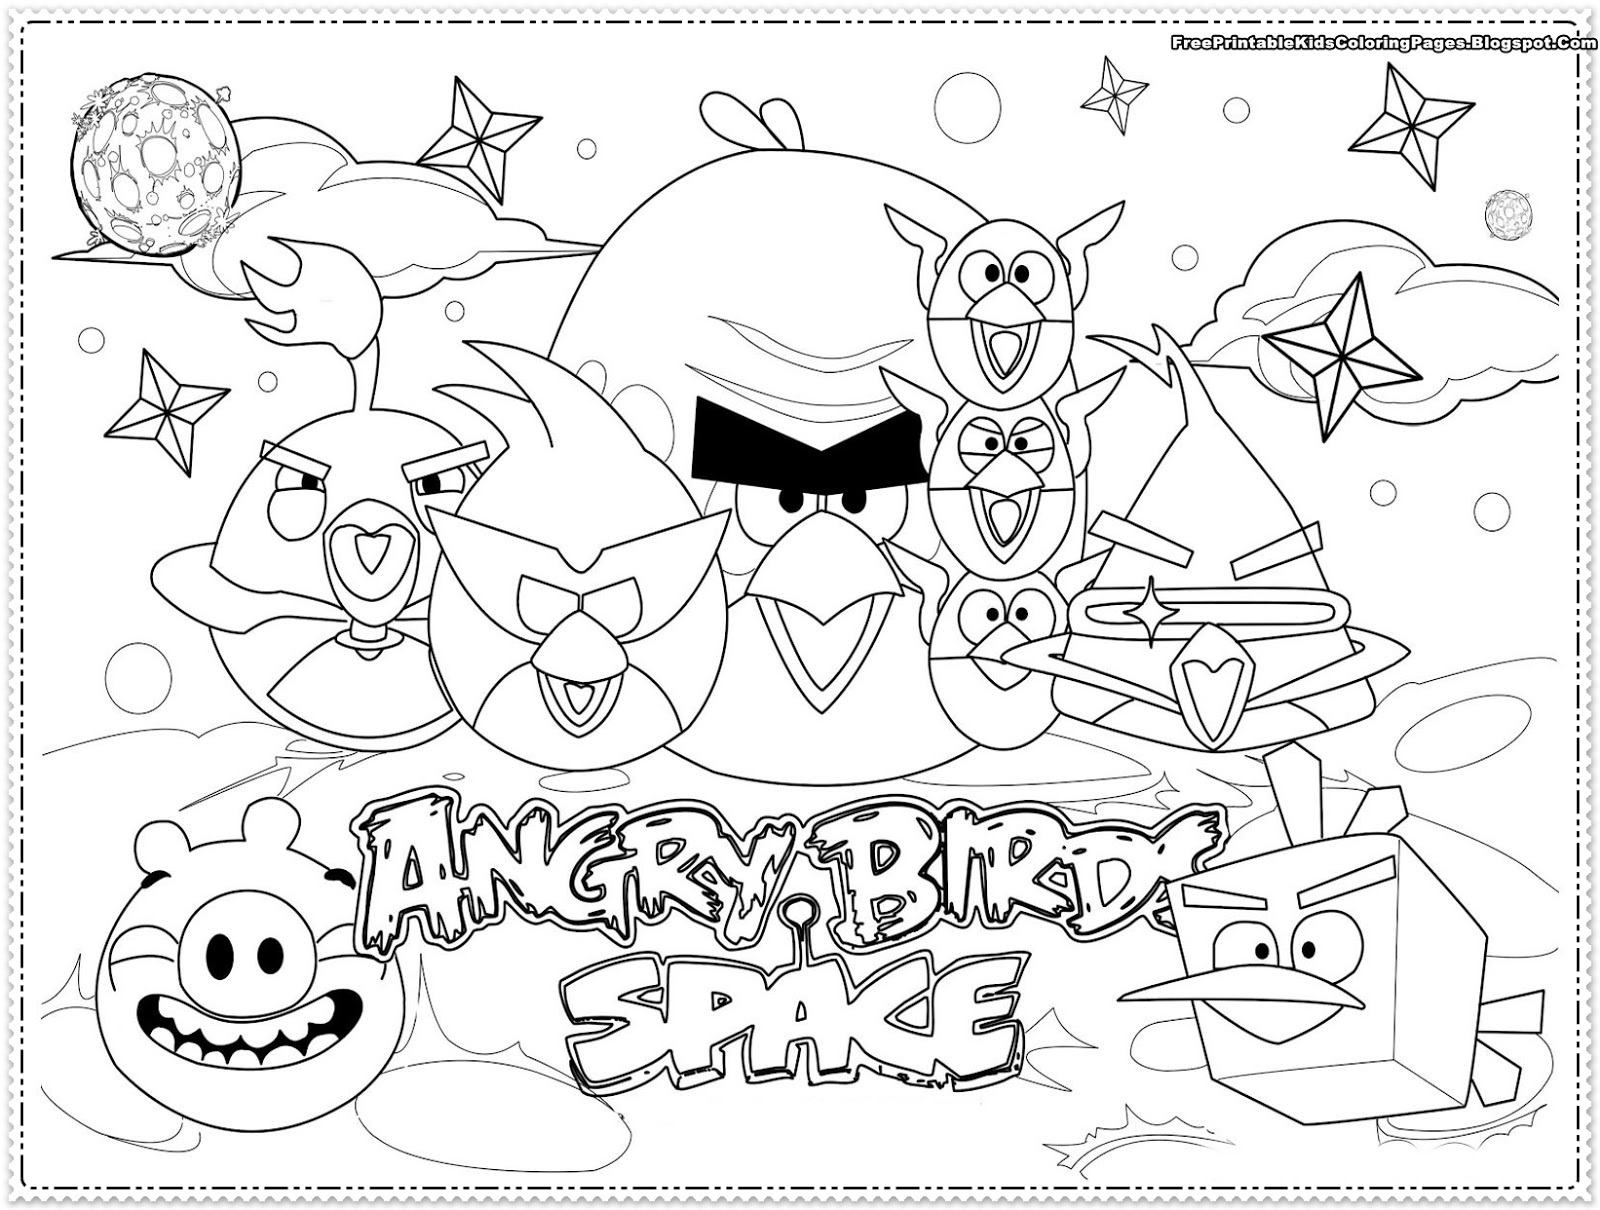 coloring pages angry birds printable - photo#24